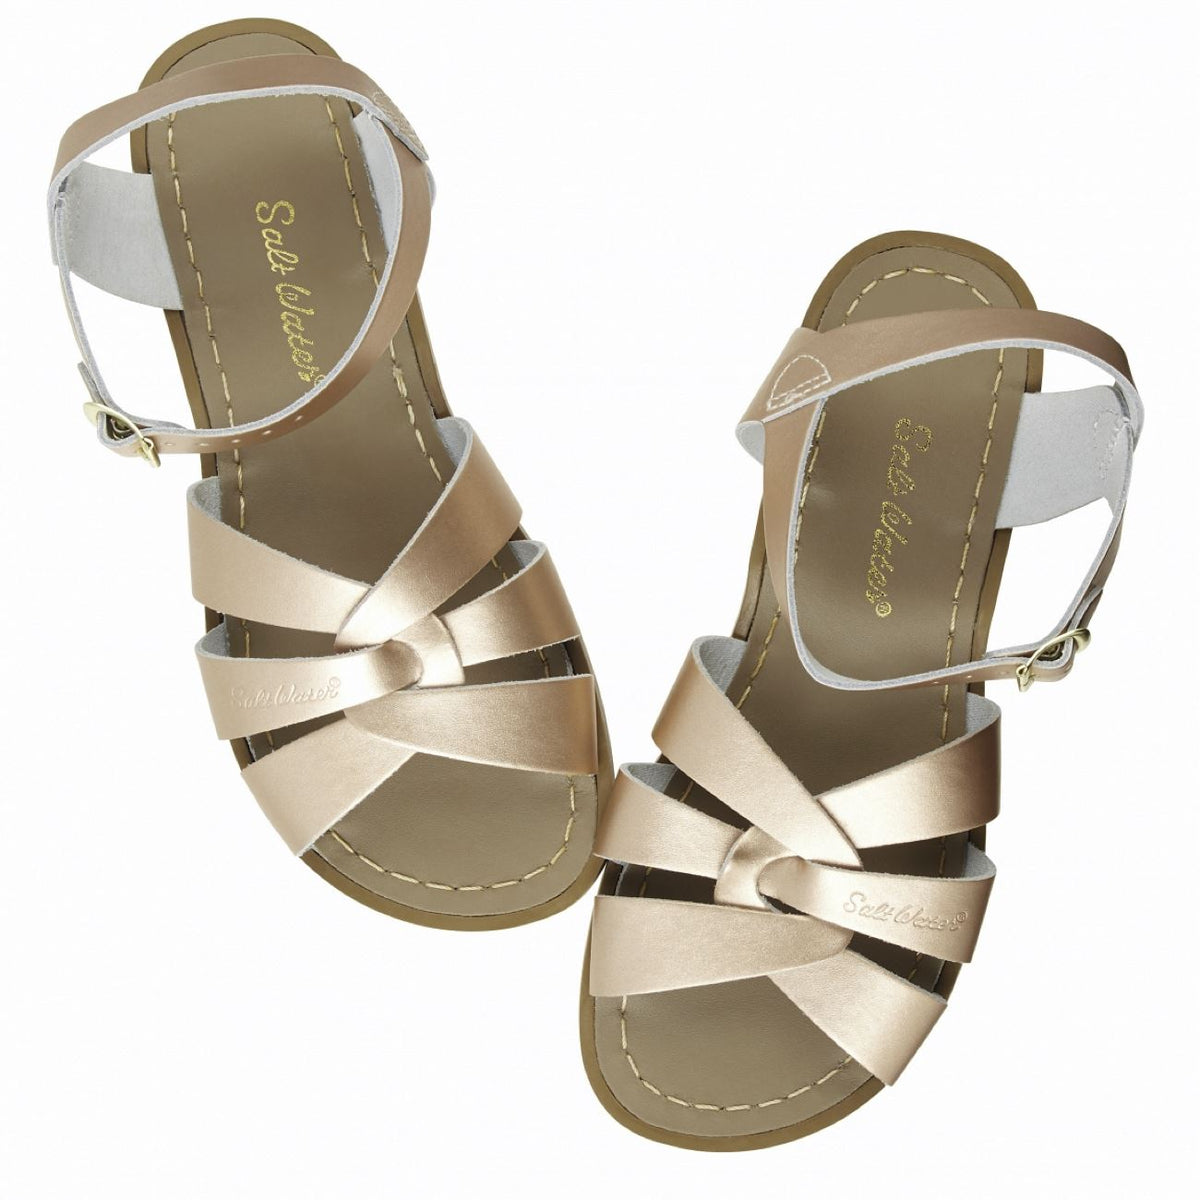 Salt Water Sandal, Original, Child, Rose Gold Sandals Salt Water Sandals Rose Gold 11